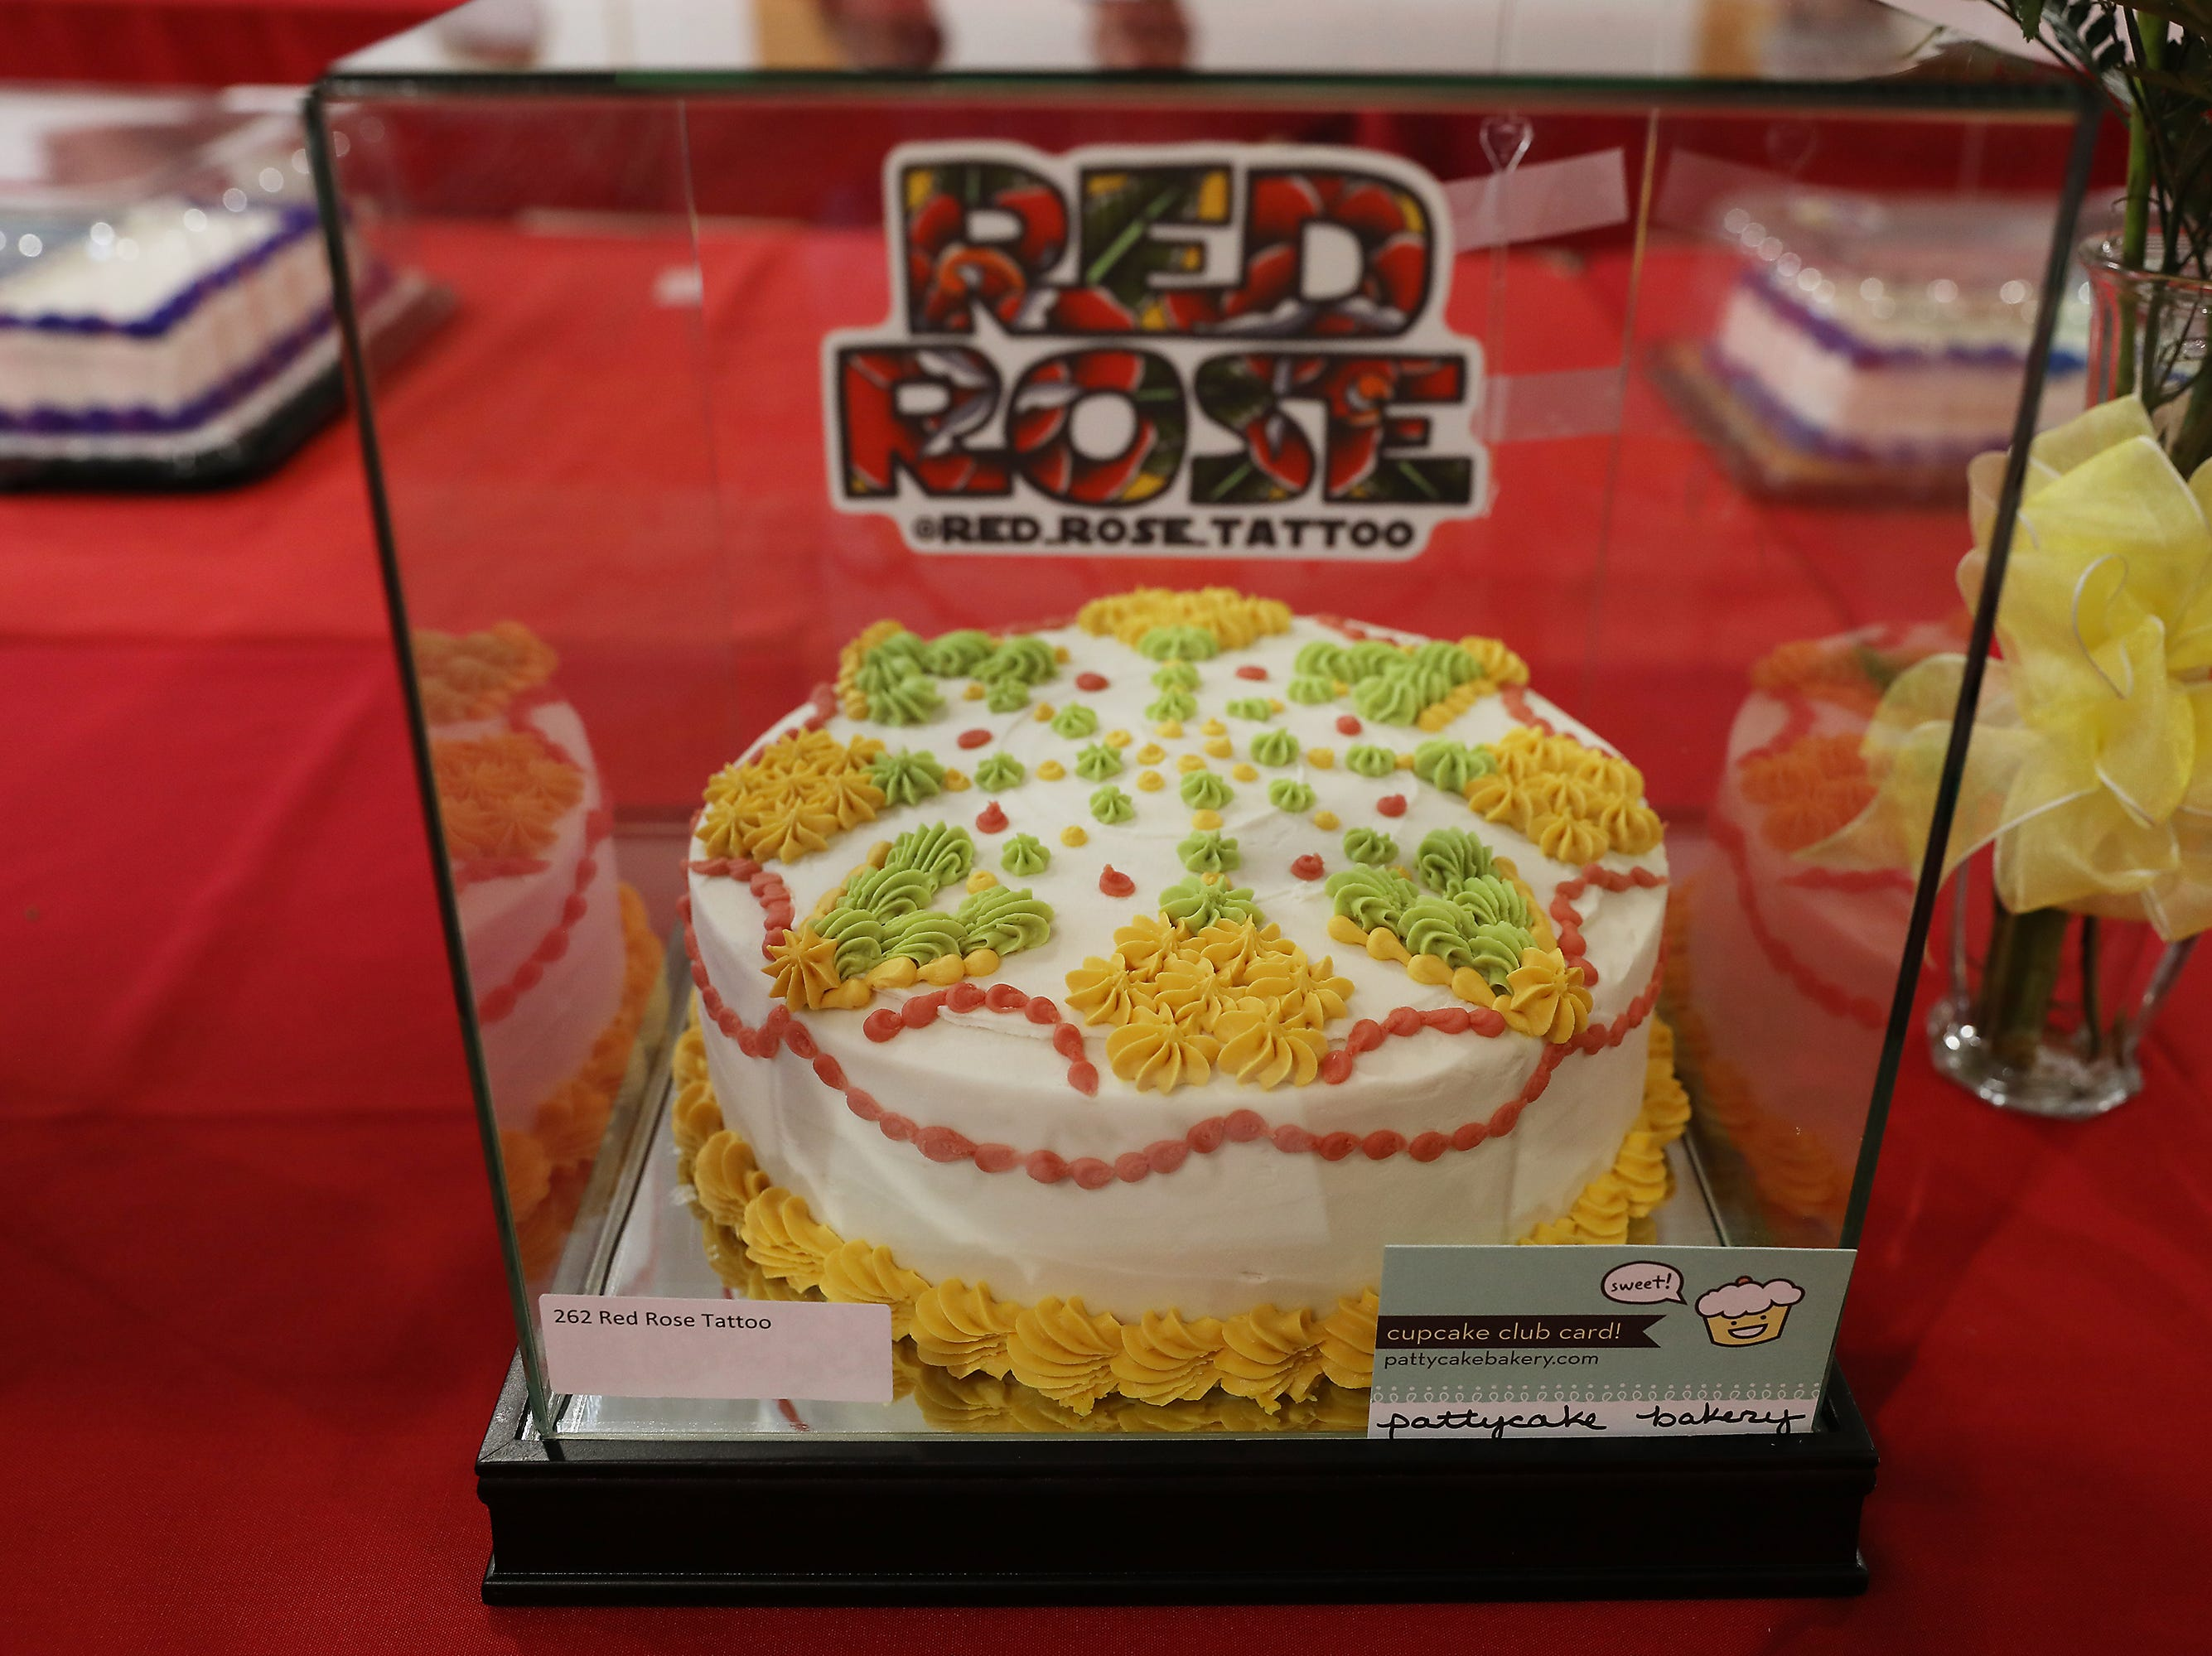 10:30 A.M. Friday cake 262 Red Rose Tattoo - $500 Red Rose gift card